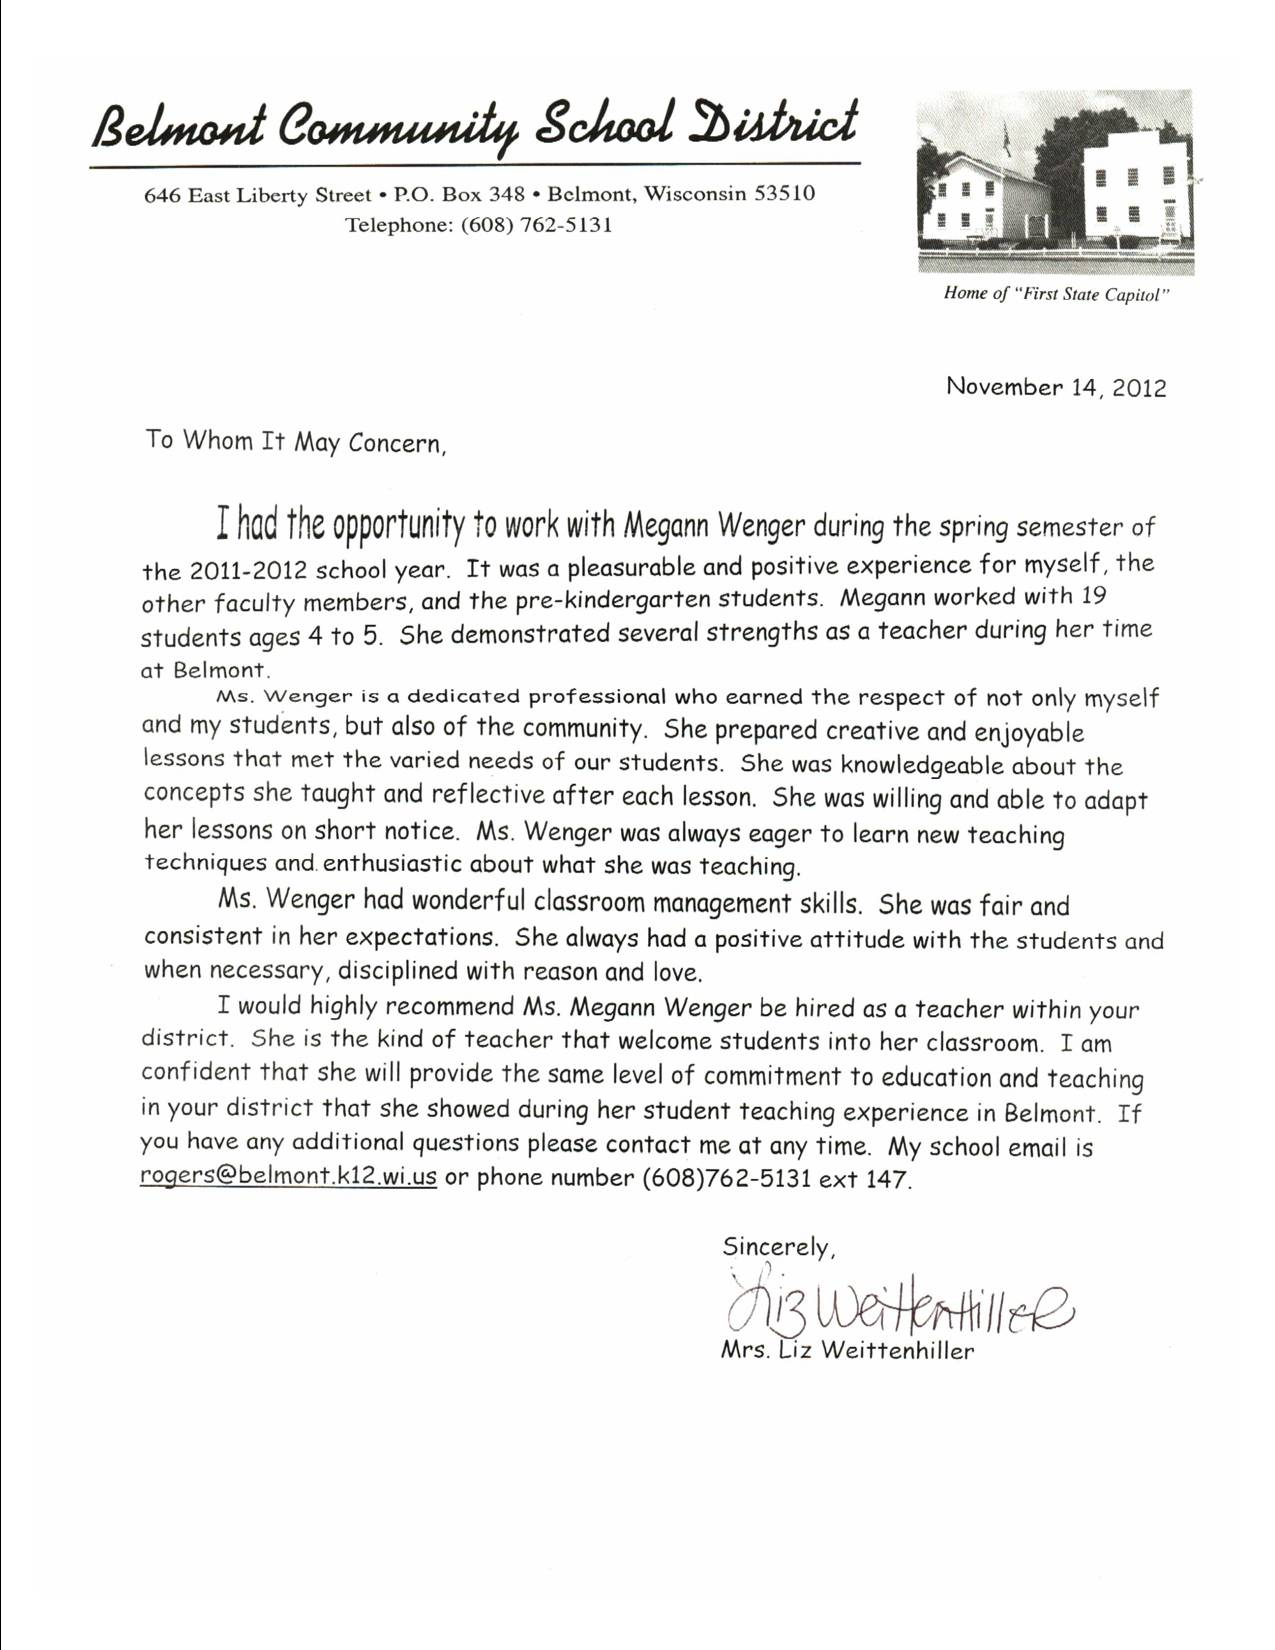 Elegant Letters Of Recommendation Elizabeth Weittenhiller: 4K Teacher  Belmont  Elementary School Idea Resume For Letter Of Recommendation